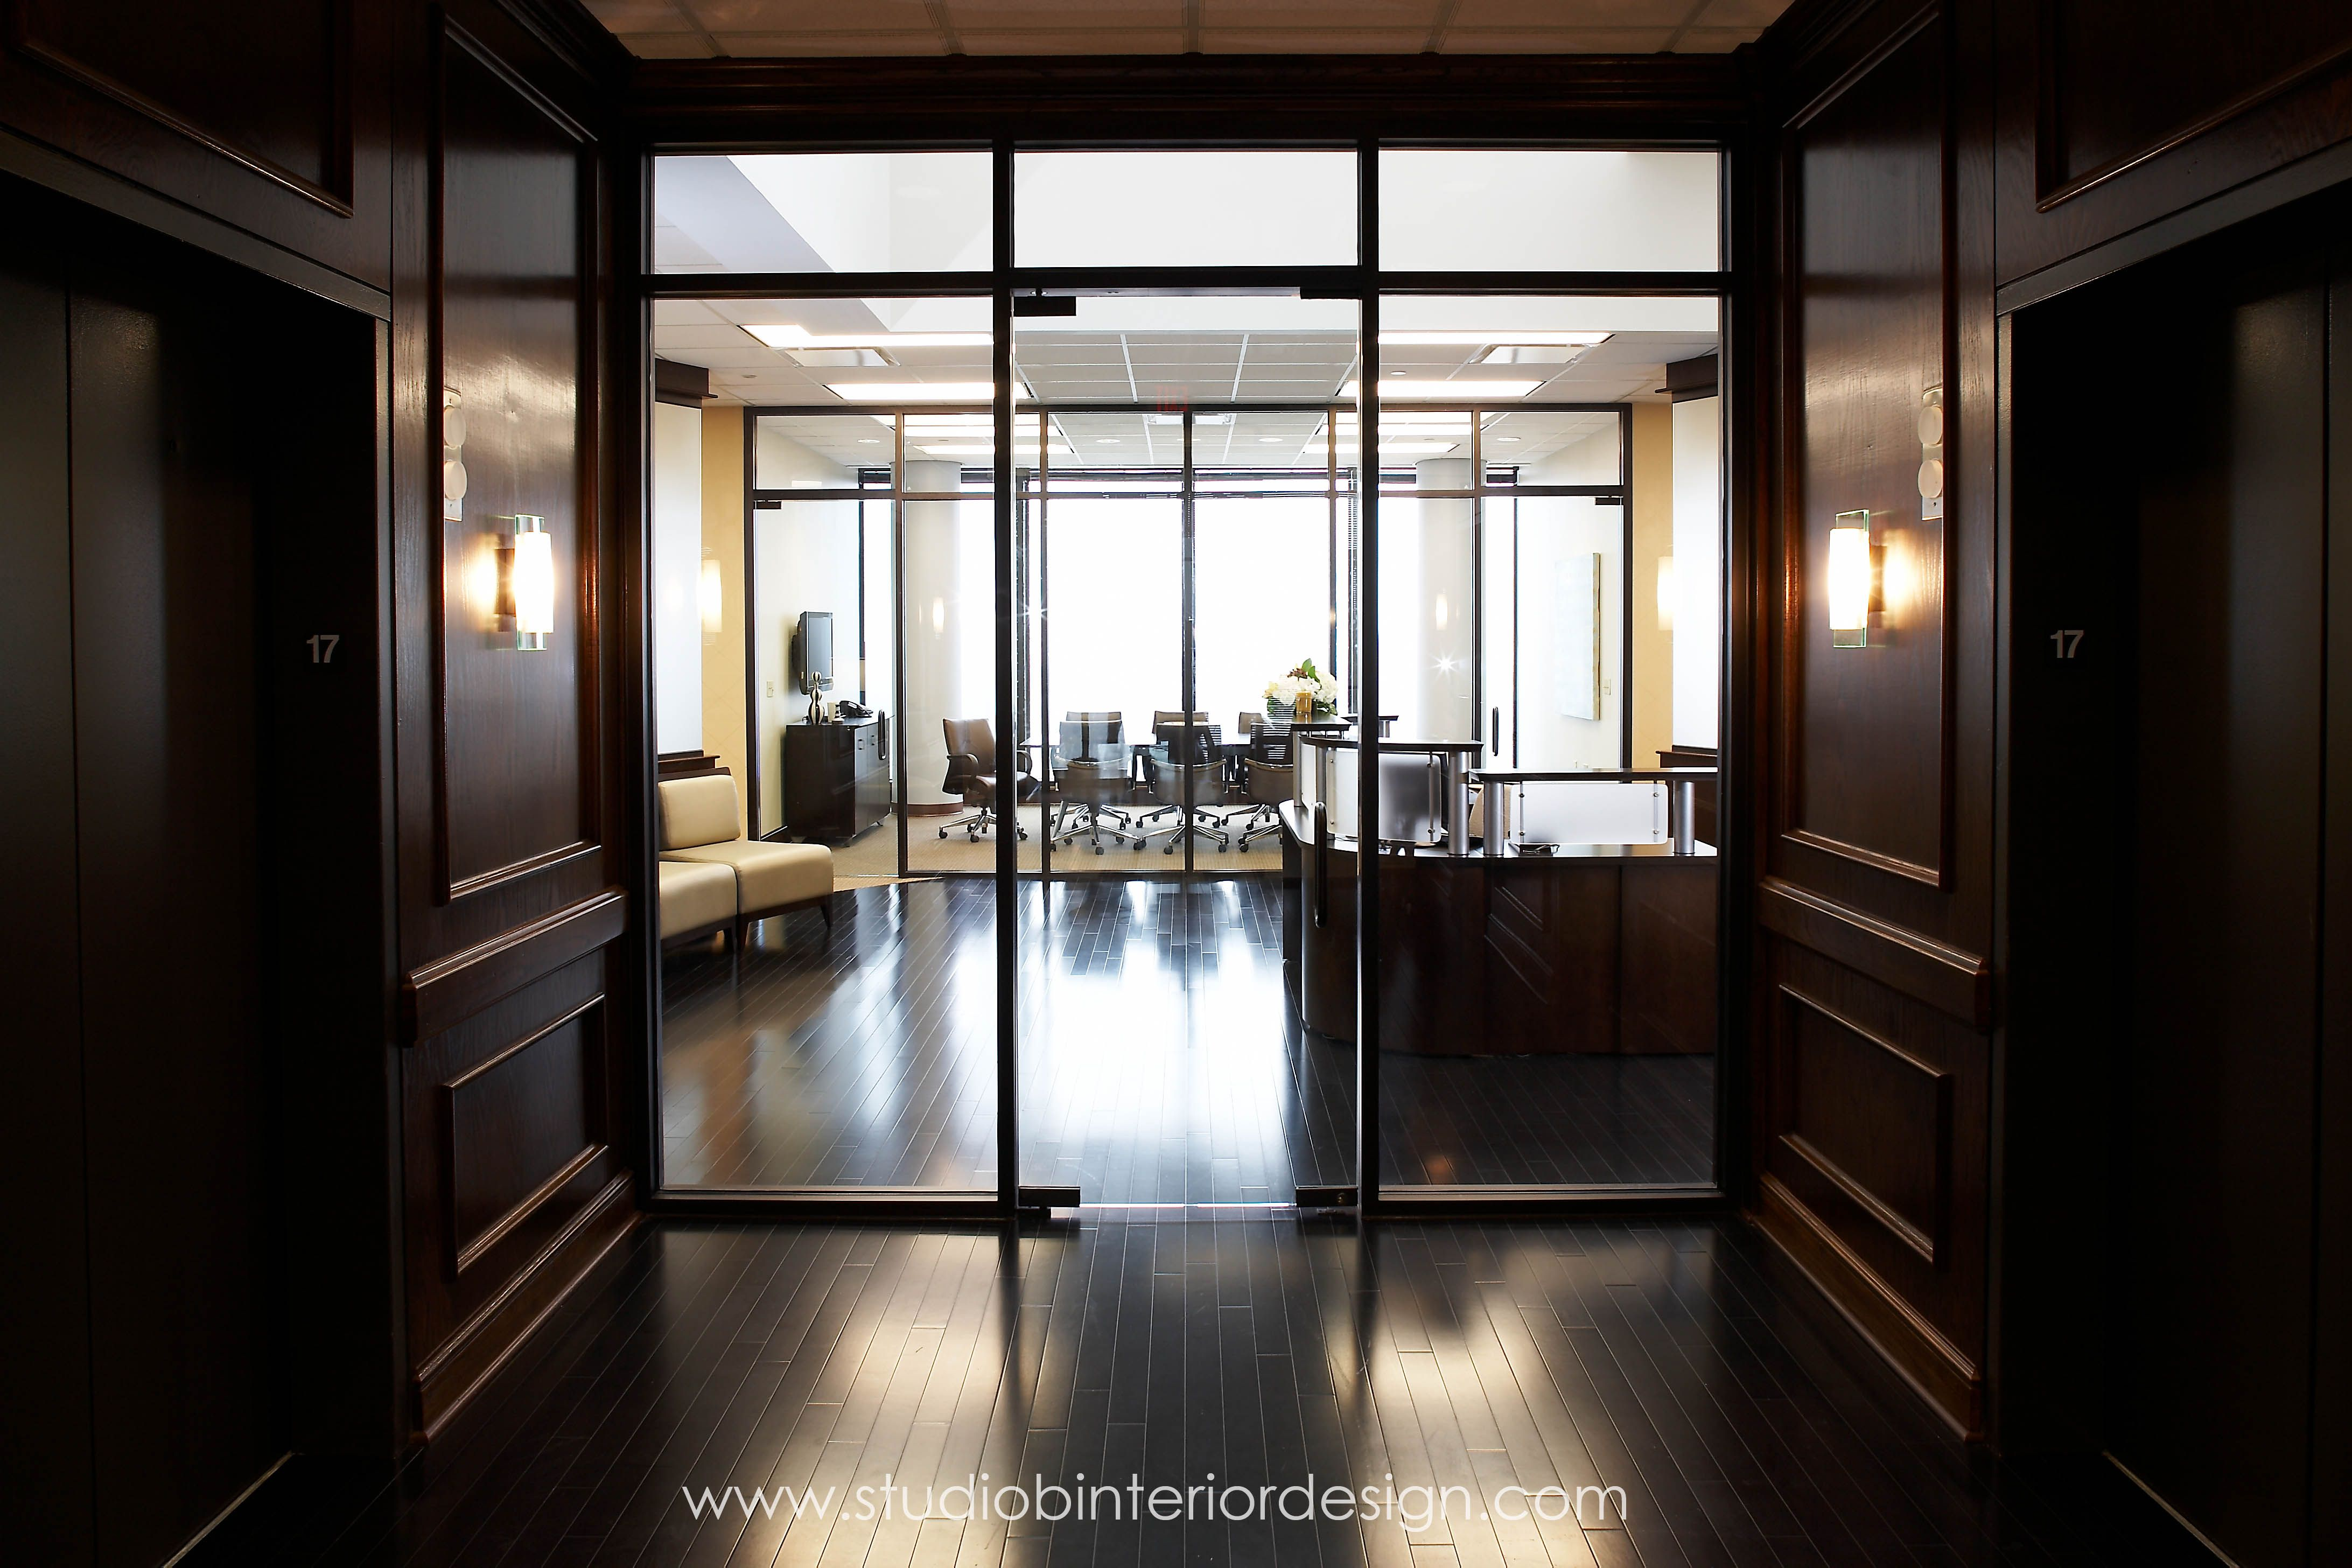 Office entrance lobby interior design i find this office lobby to be somewhat inspiring